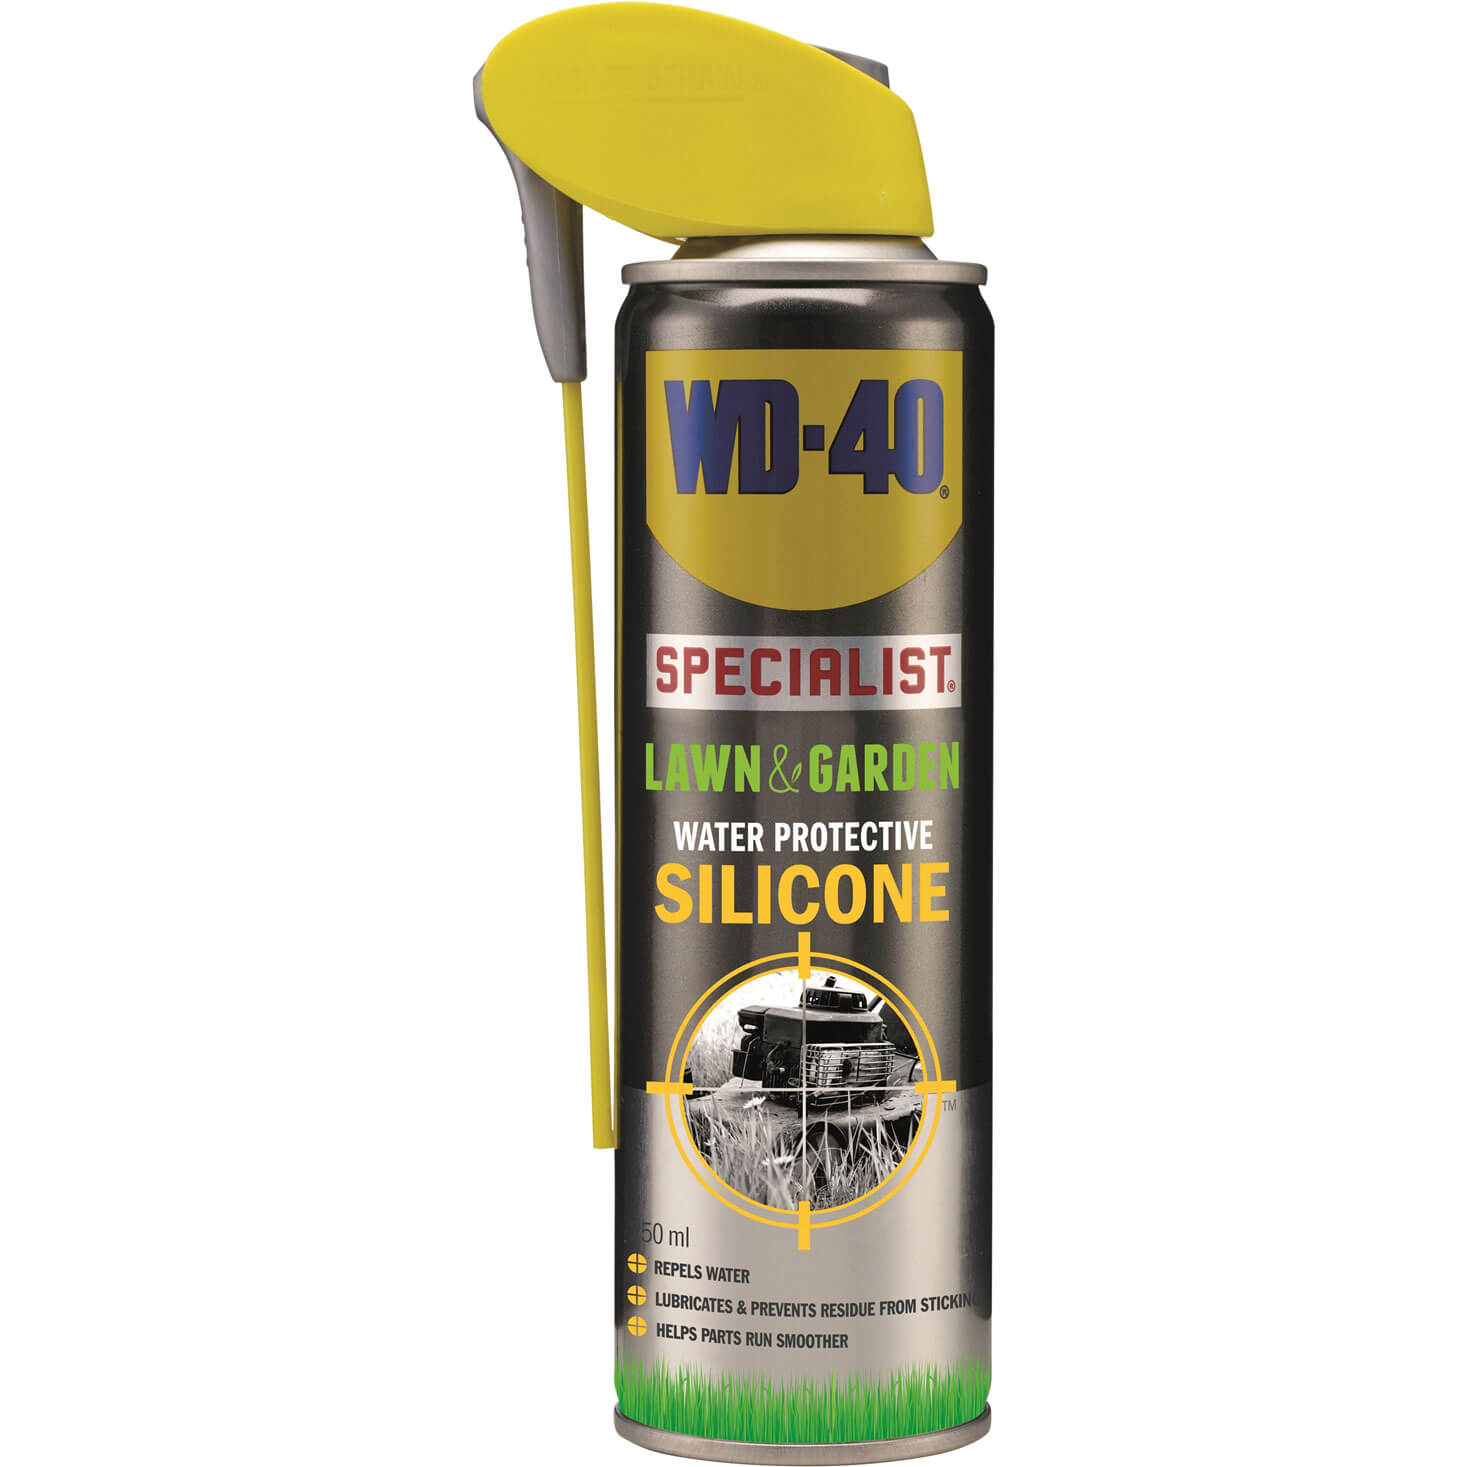 Image of WD40 Lawn & Garden Protective Silicone 250ml